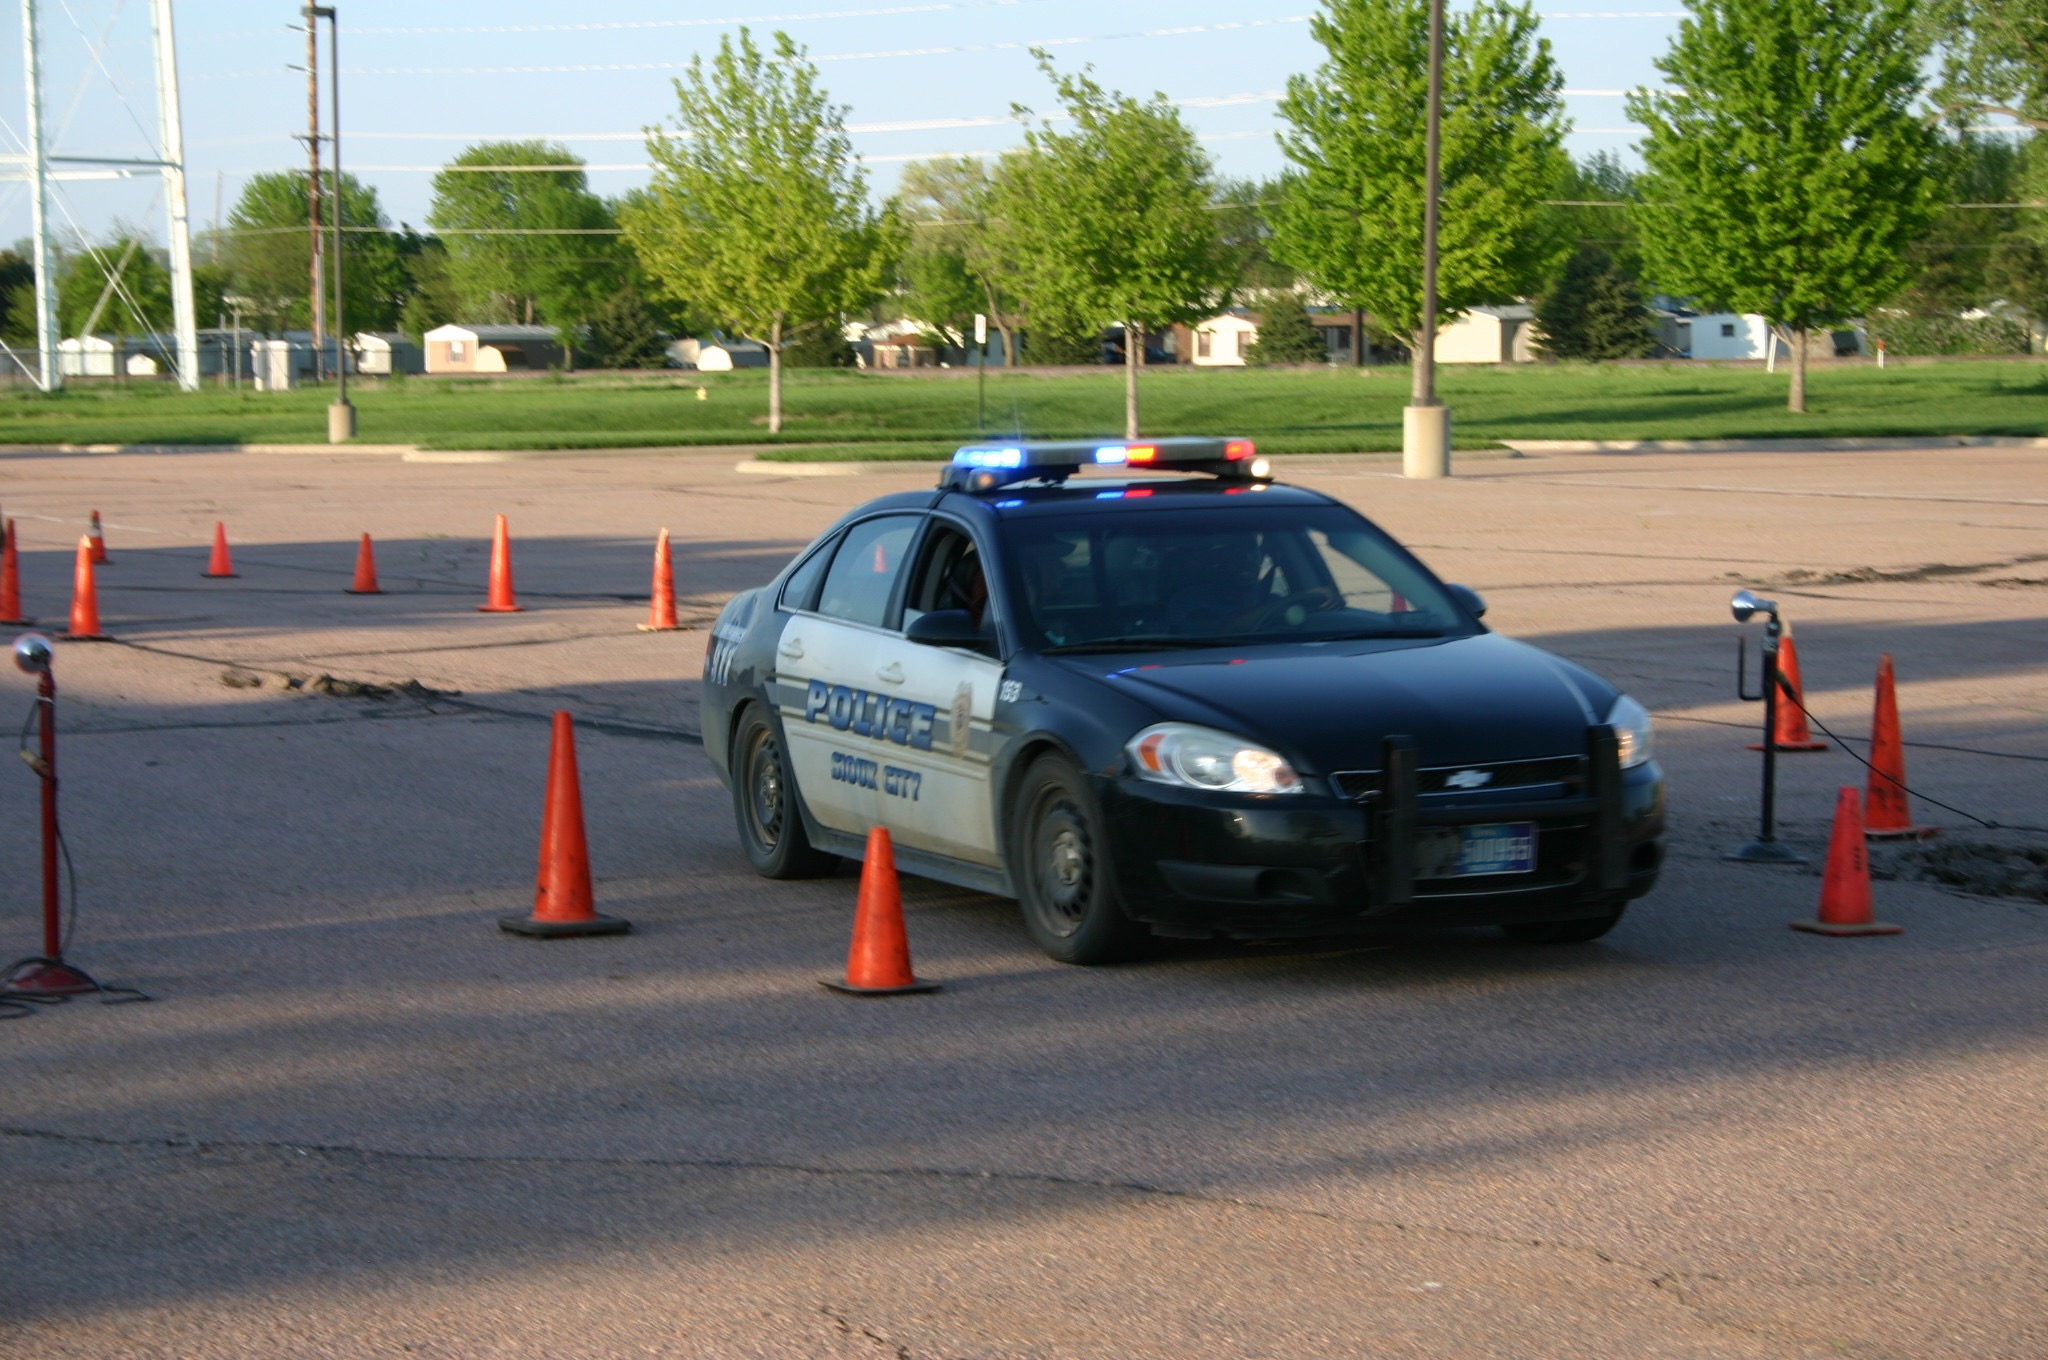 Learning how to react quickly in a car helps keep officers safe while responding to emergencies.